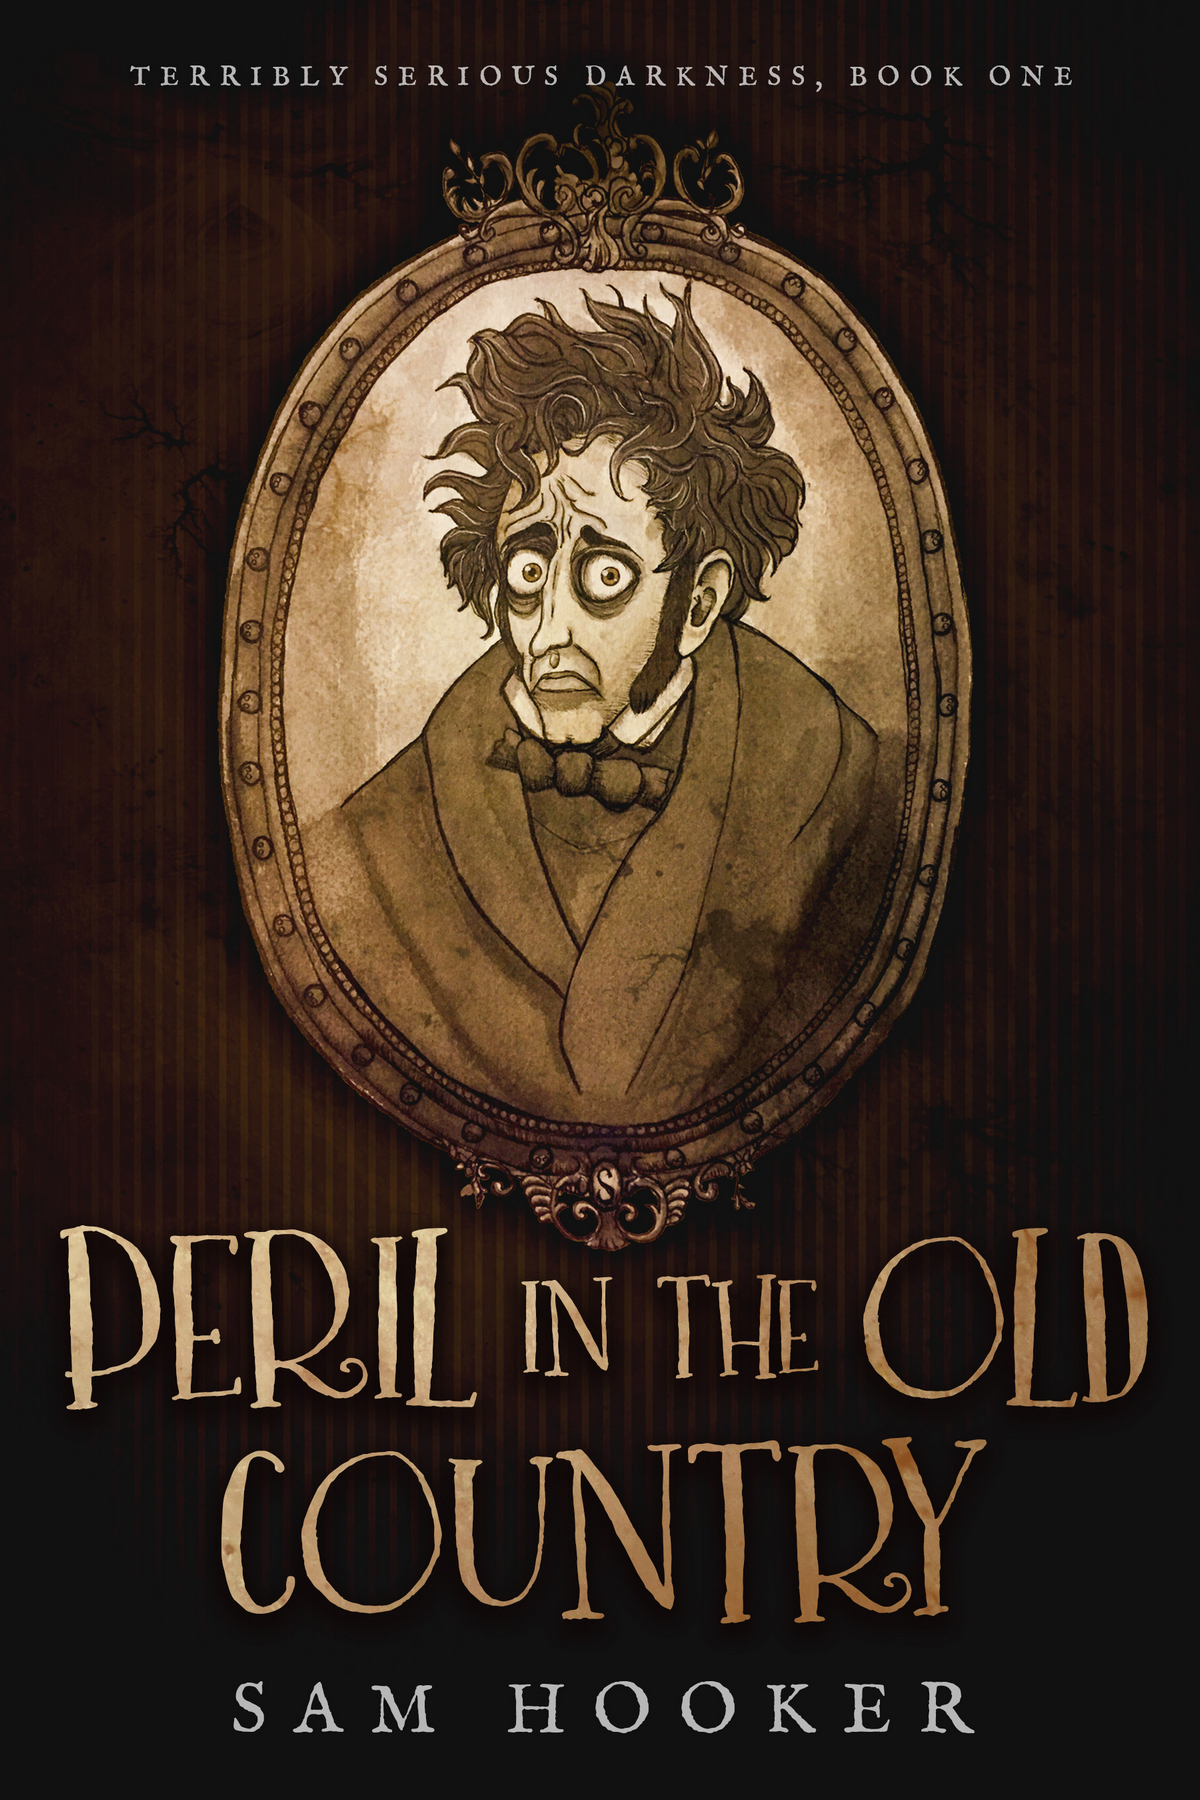 Peril in the old country - bibliophile review